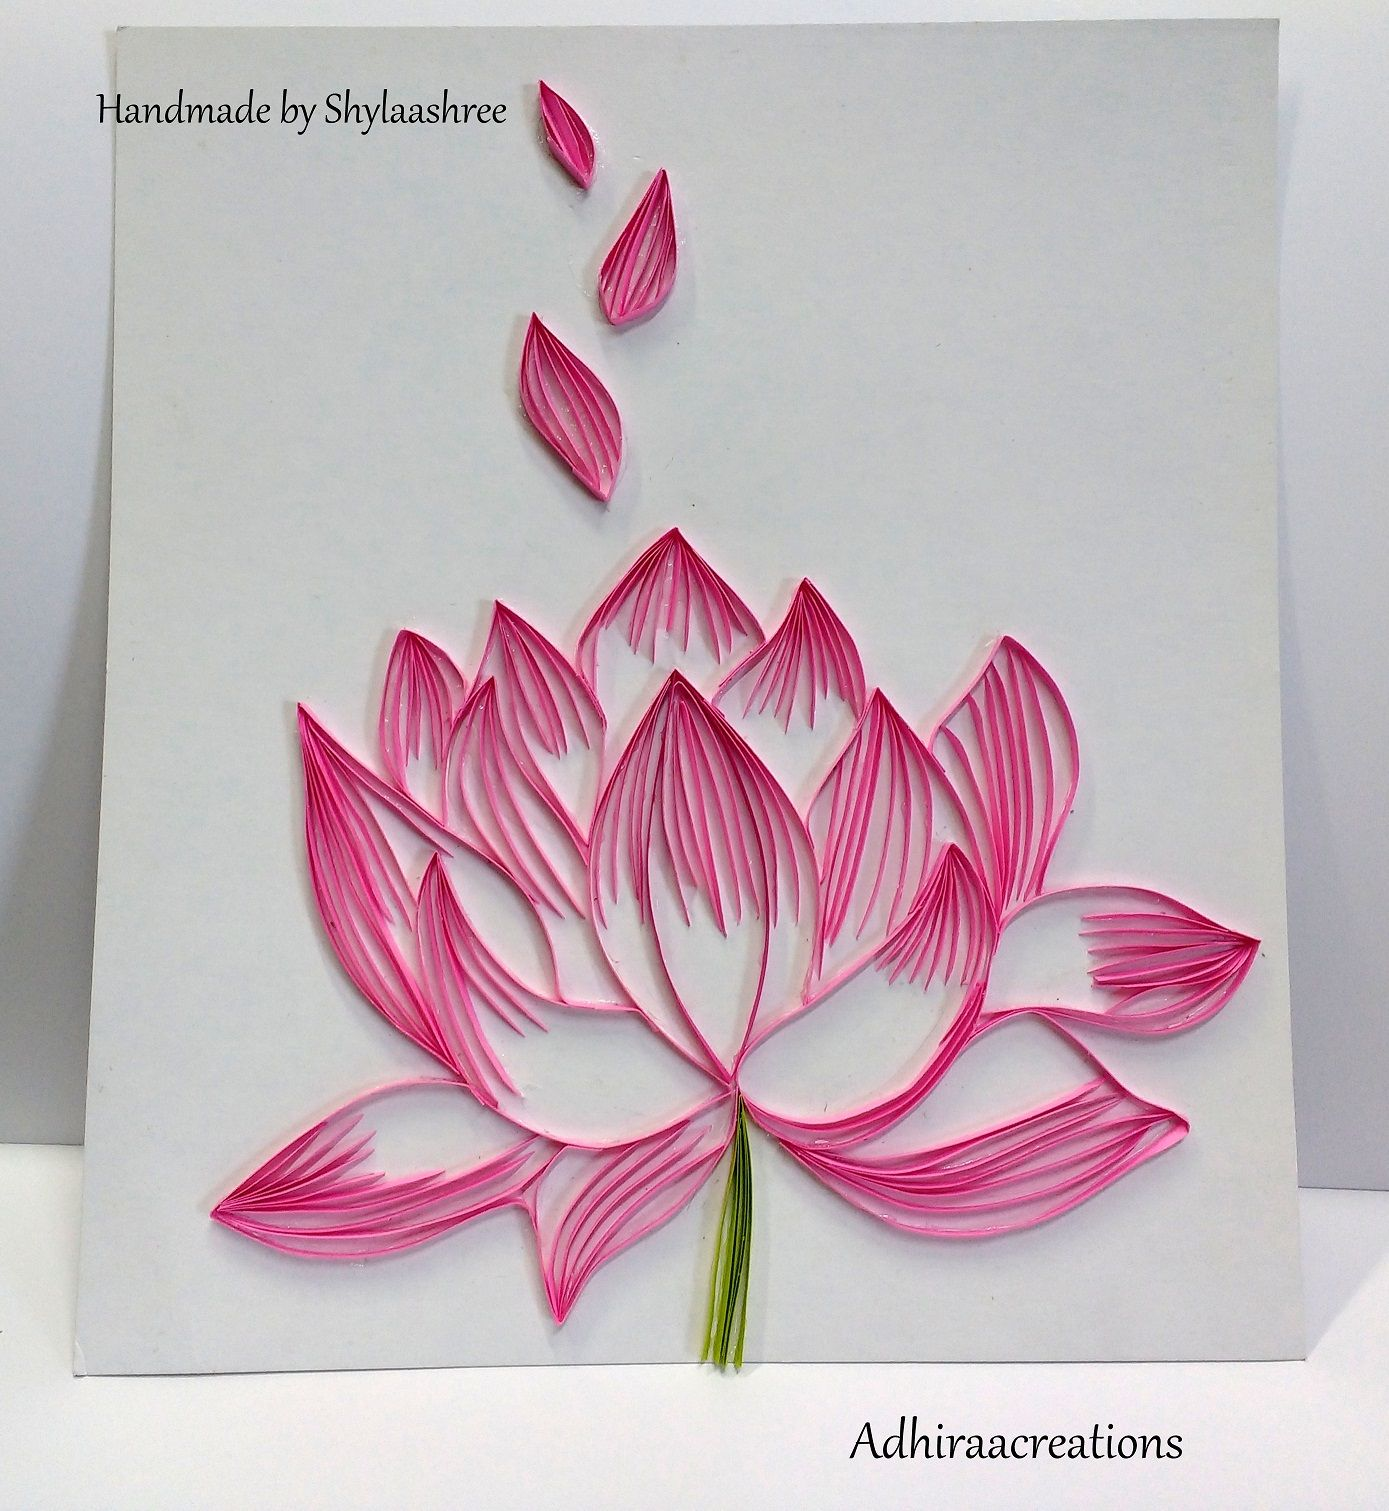 Adhiraacreations Quilled Lotus Quilling Quilling Art Quilling